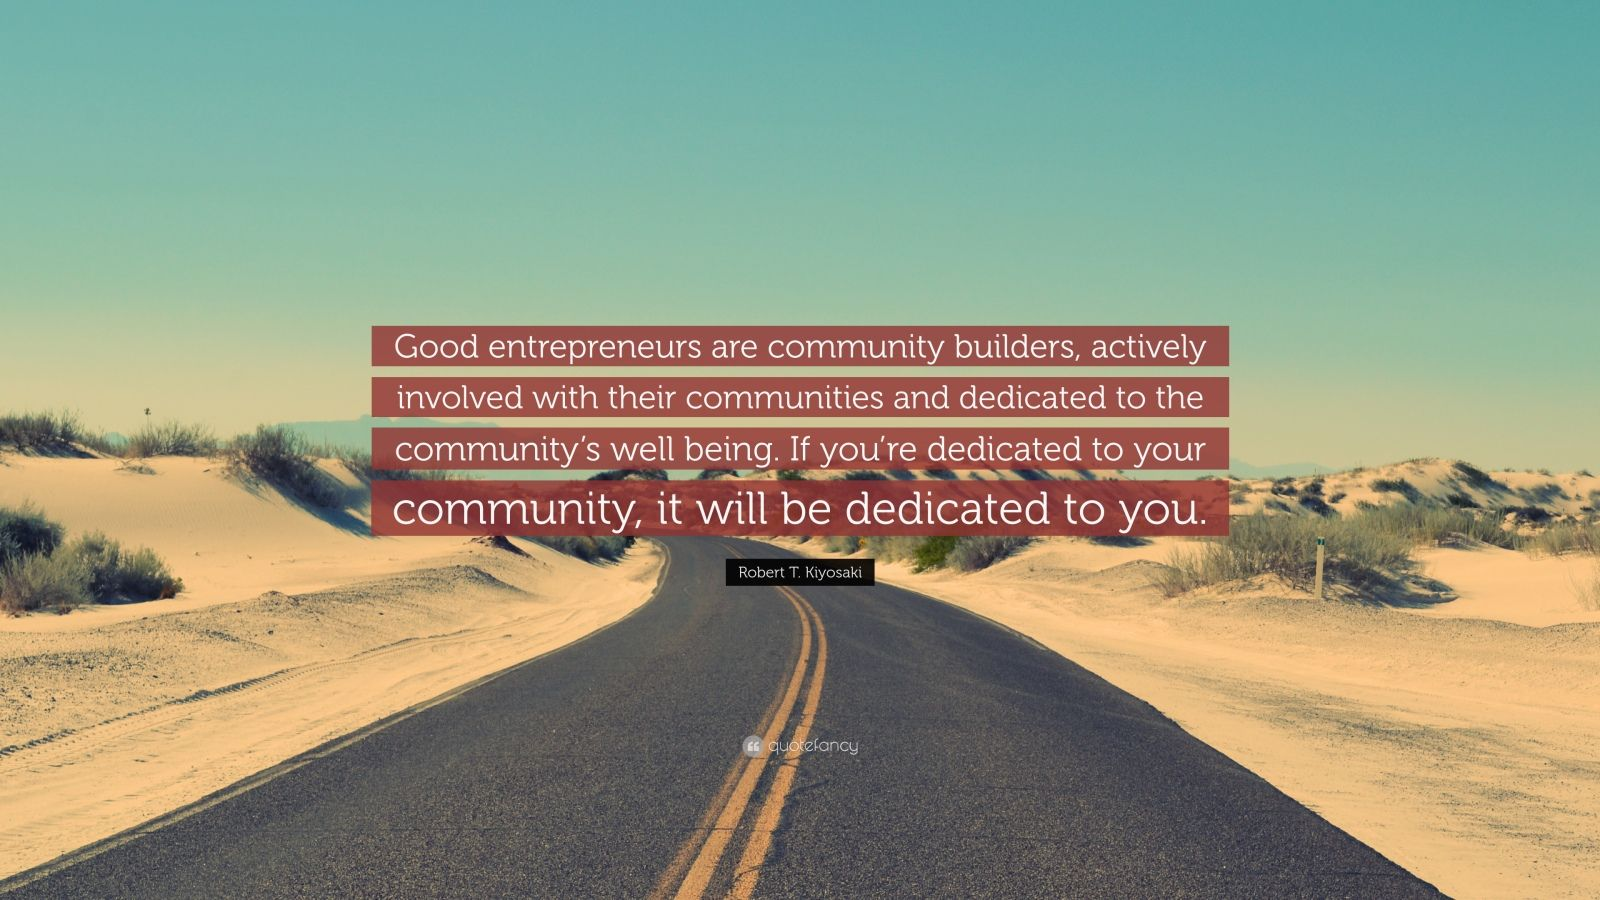 """Robert T. Kiyosaki Quote: """"Good entrepreneurs are community builders, actively involved with their communities and dedicated to the community's well being. If you're dedicated to your community, it will be dedicated to you."""""""